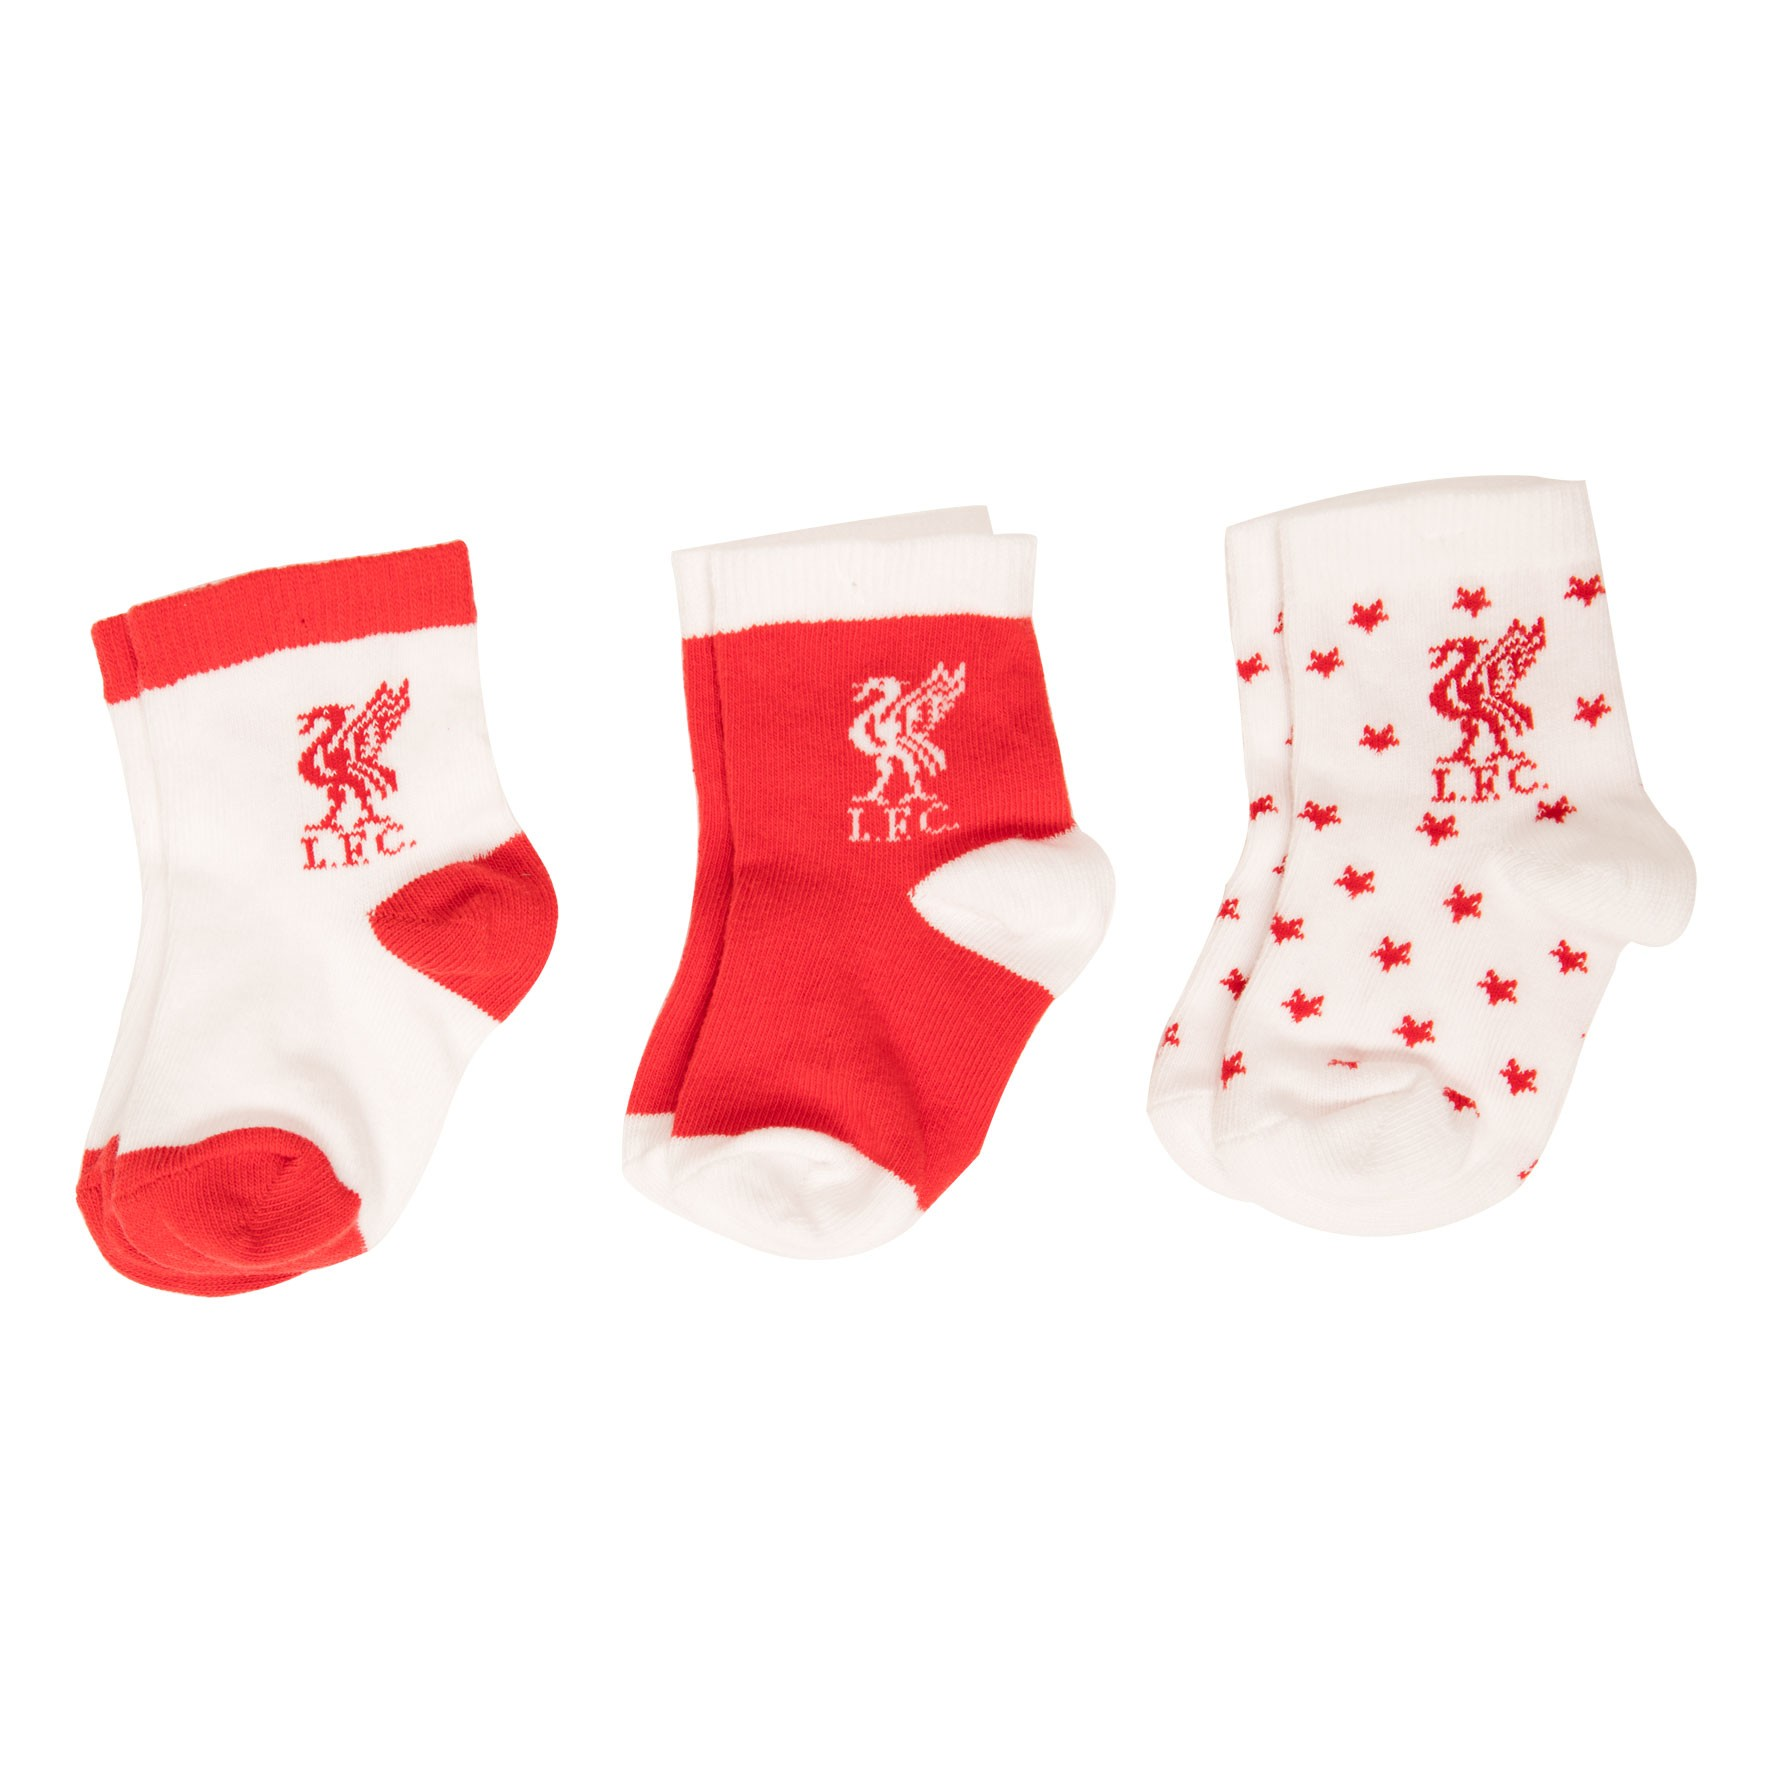 Baby Gift Baskets Liverpool : Lfc pack baby socks